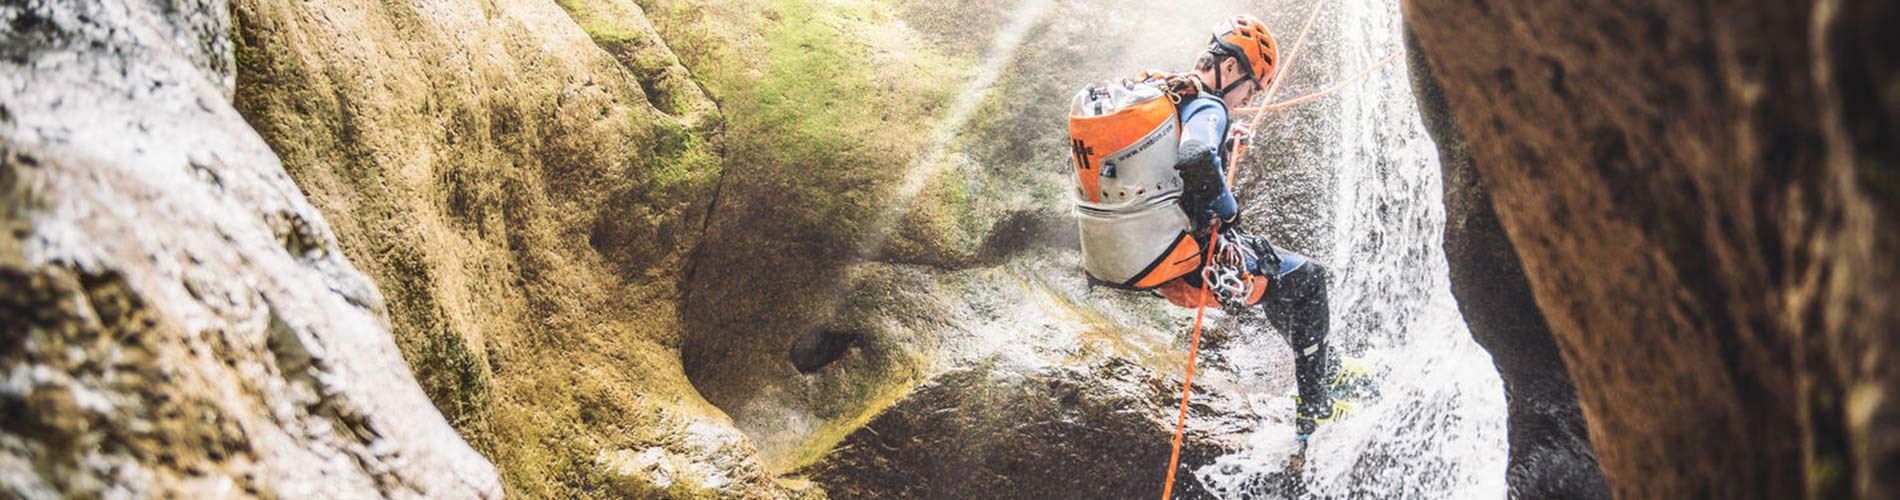 Canyoning mit Deep Roots Adventures